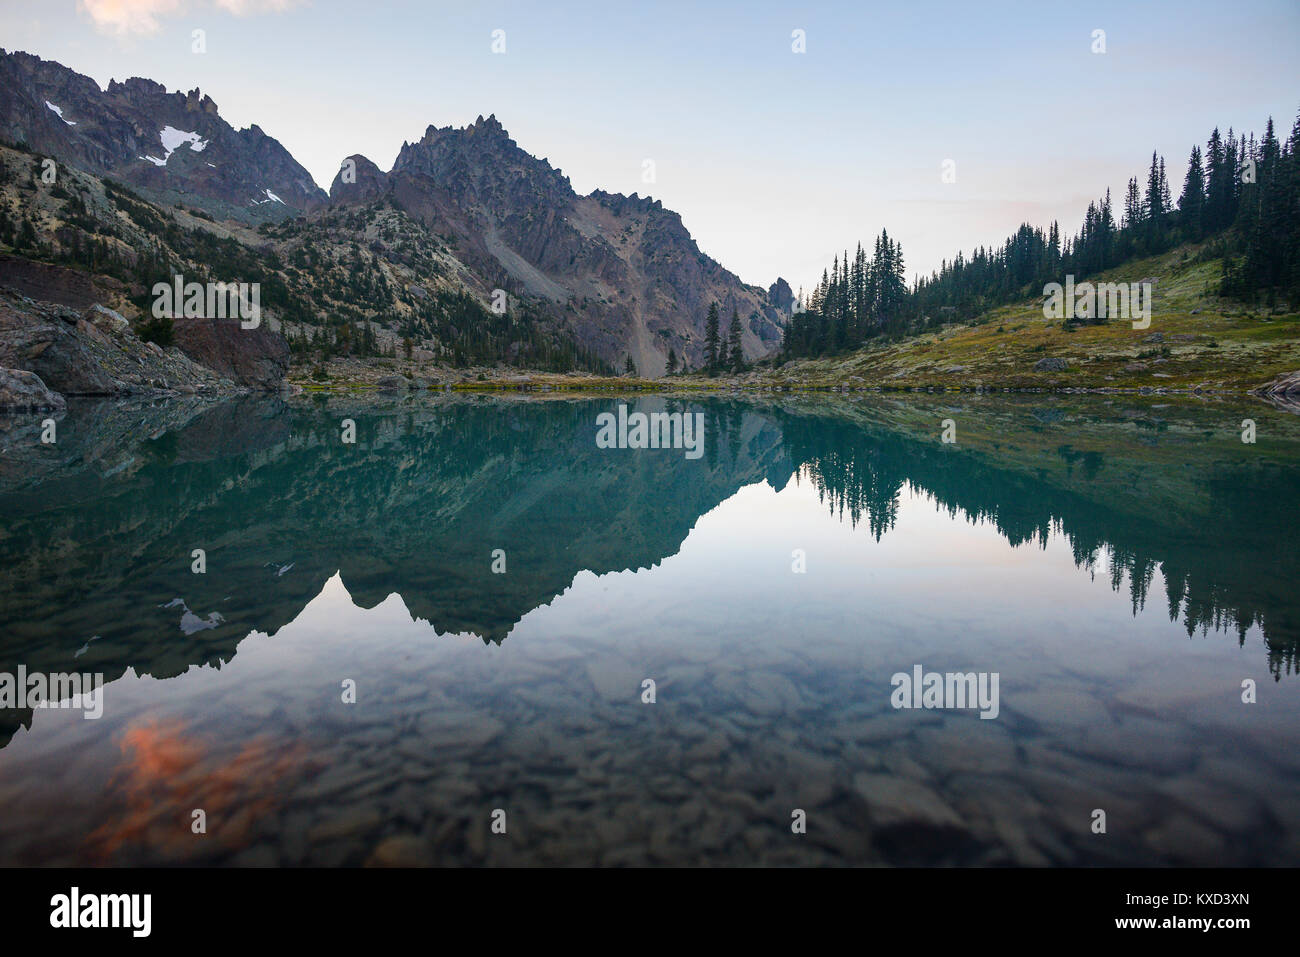 Symmetry view of lake by mountains against cloudy sky at Olympic National Park - Stock Image